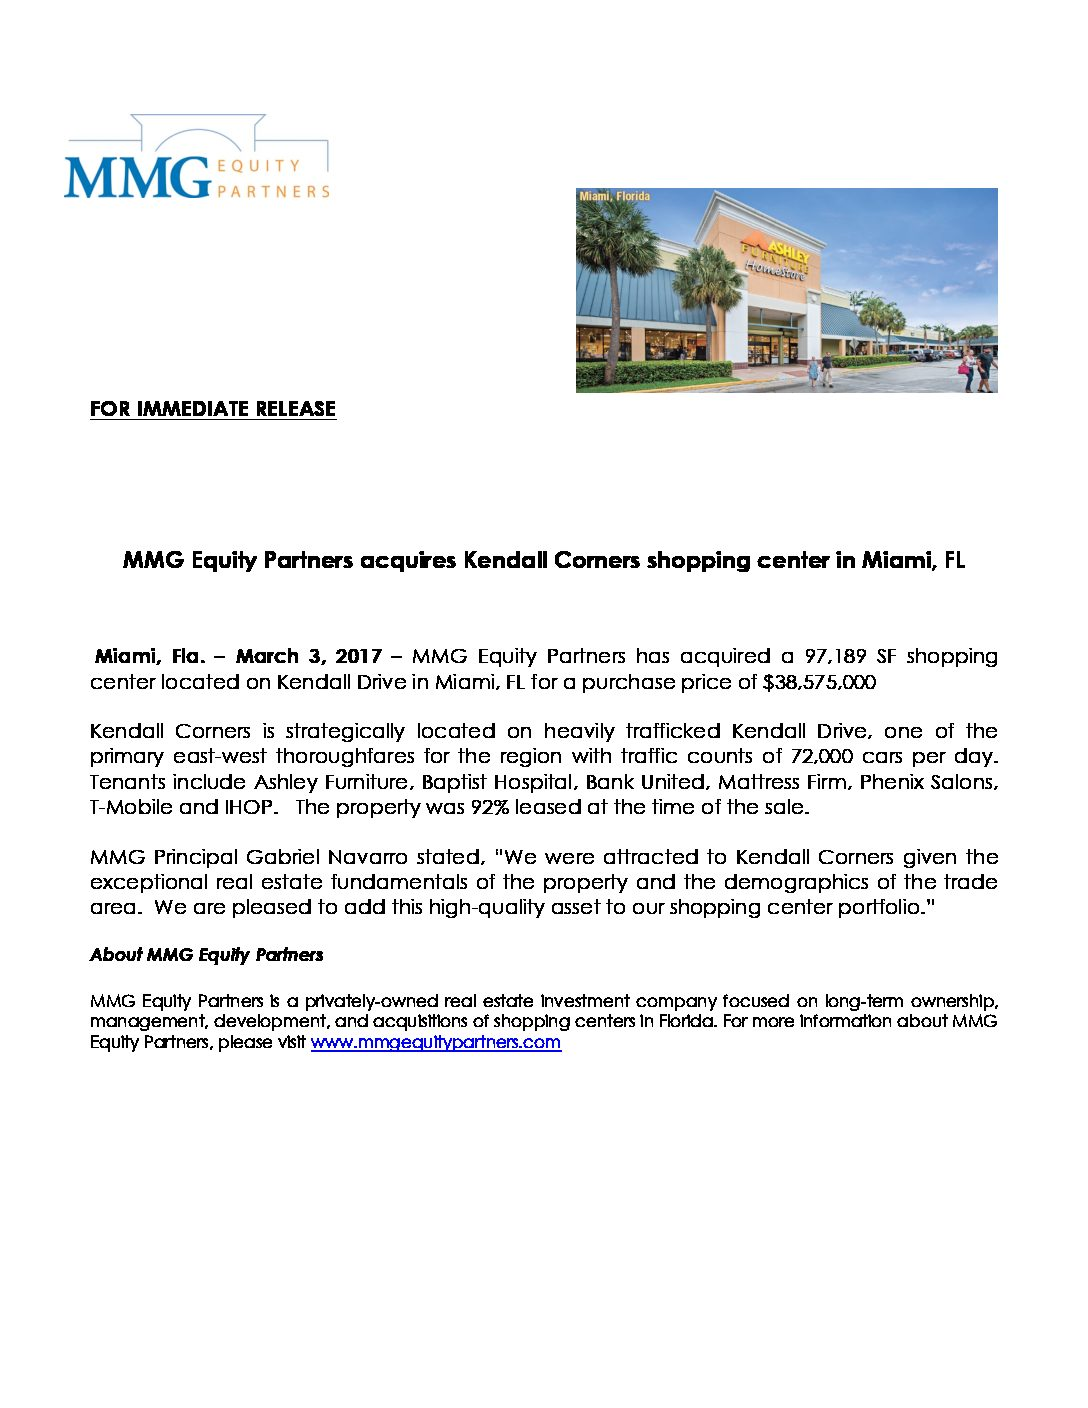 Press-Release-MMG-Acquires-Kendall-Corners-2